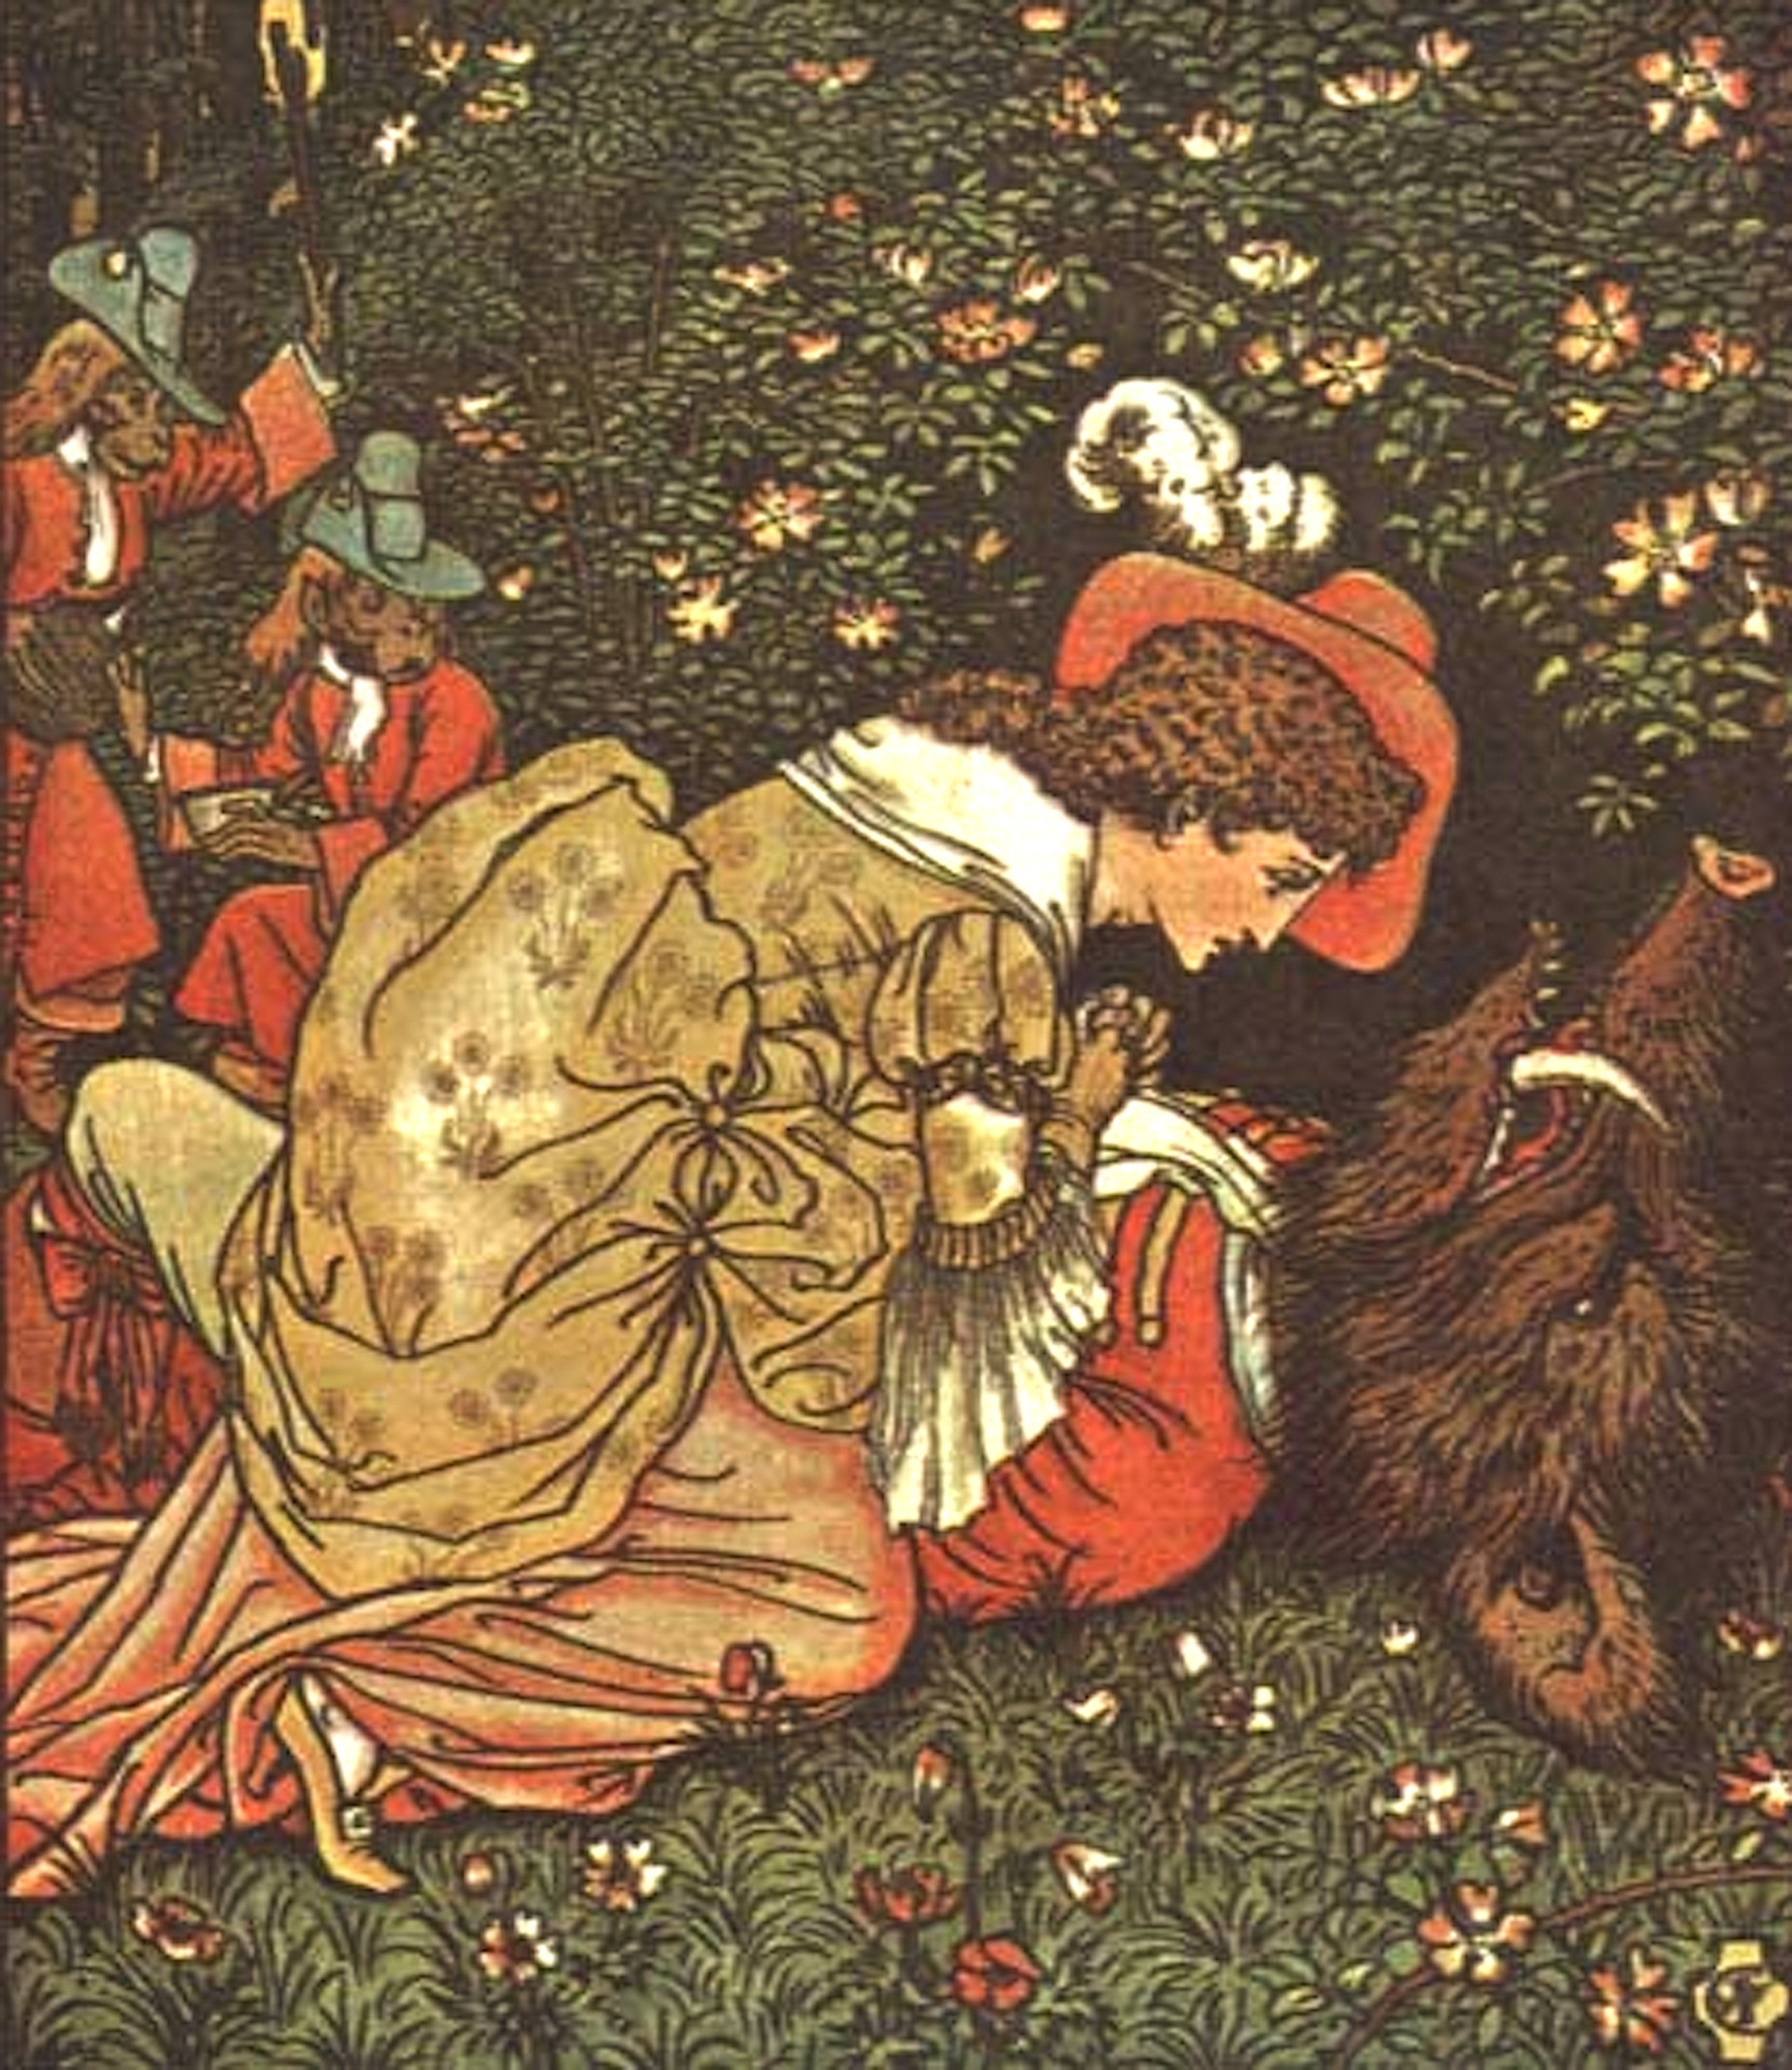 Walter Crane – Illustration for Beauty and the Beast